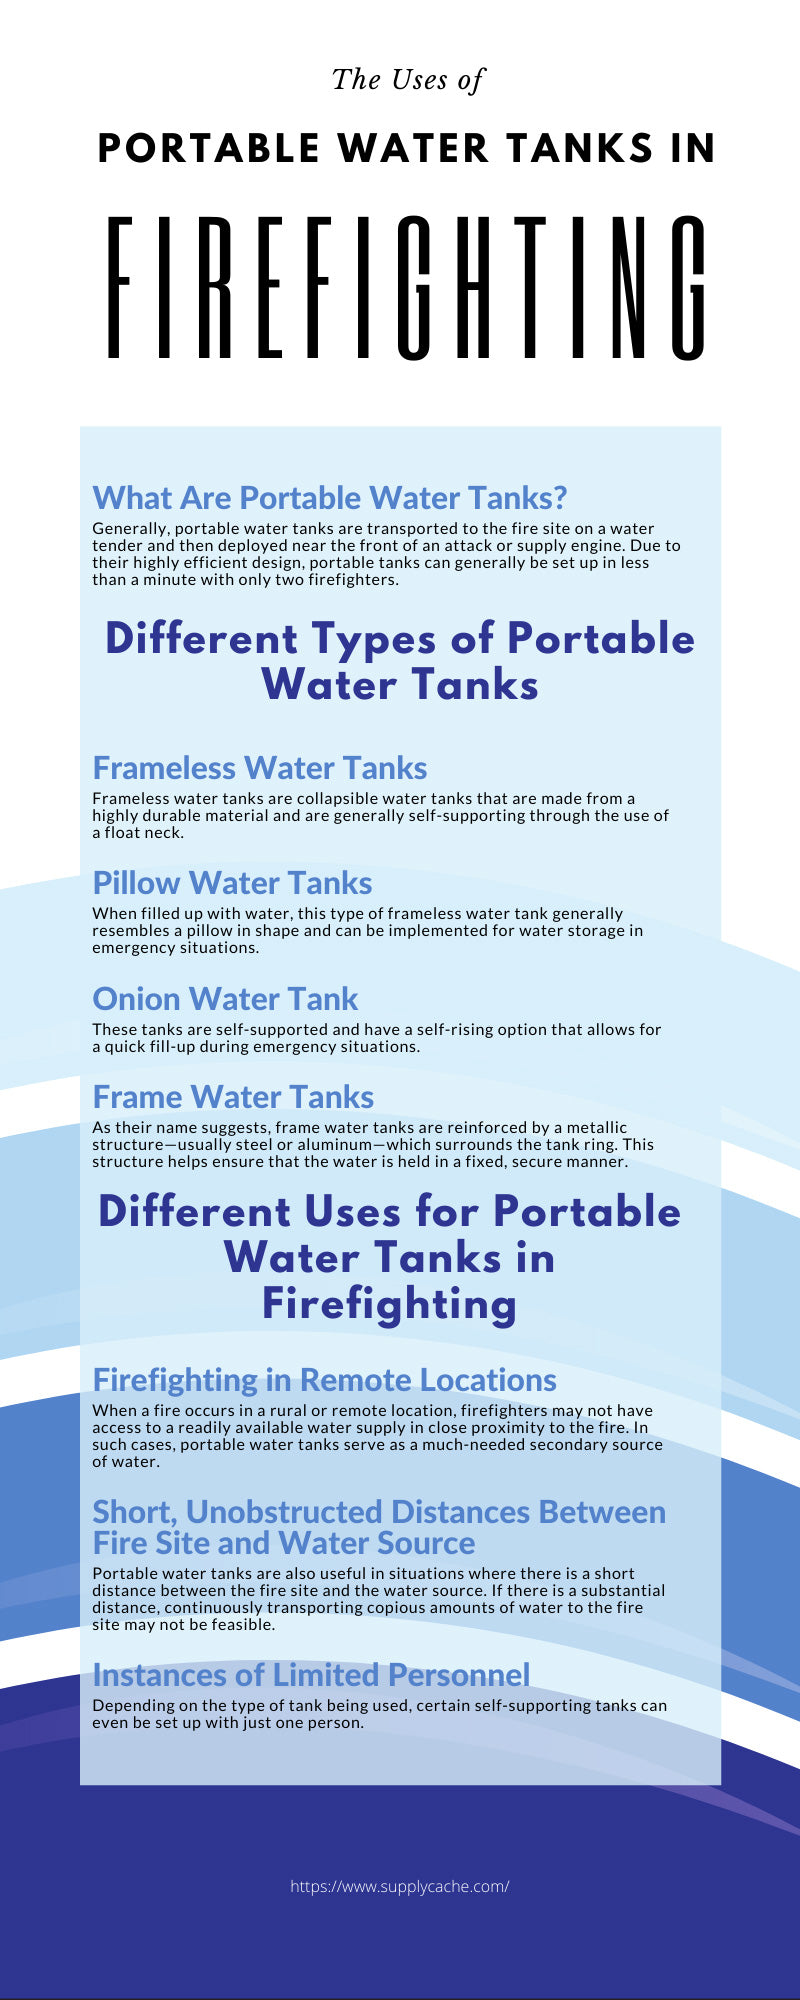 The Uses of Portable Water Tanks in Firefighting